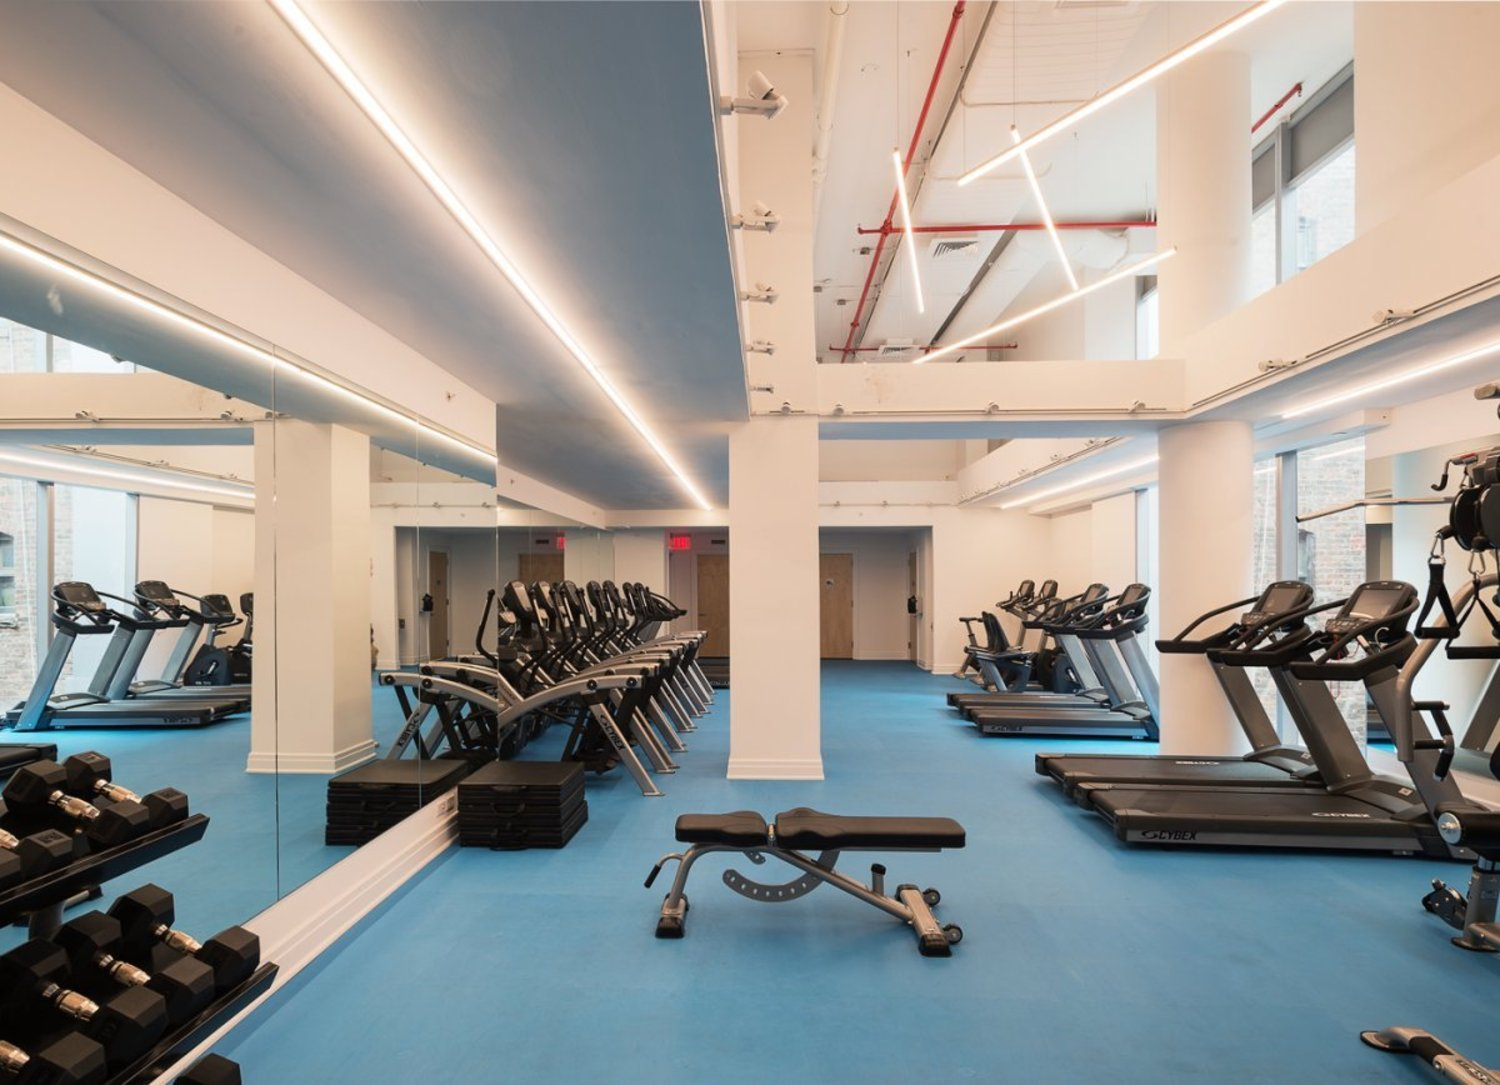 The building also counts a gym among its amenities. Use of both the gym and rooftop will cost residents about $600 a year.